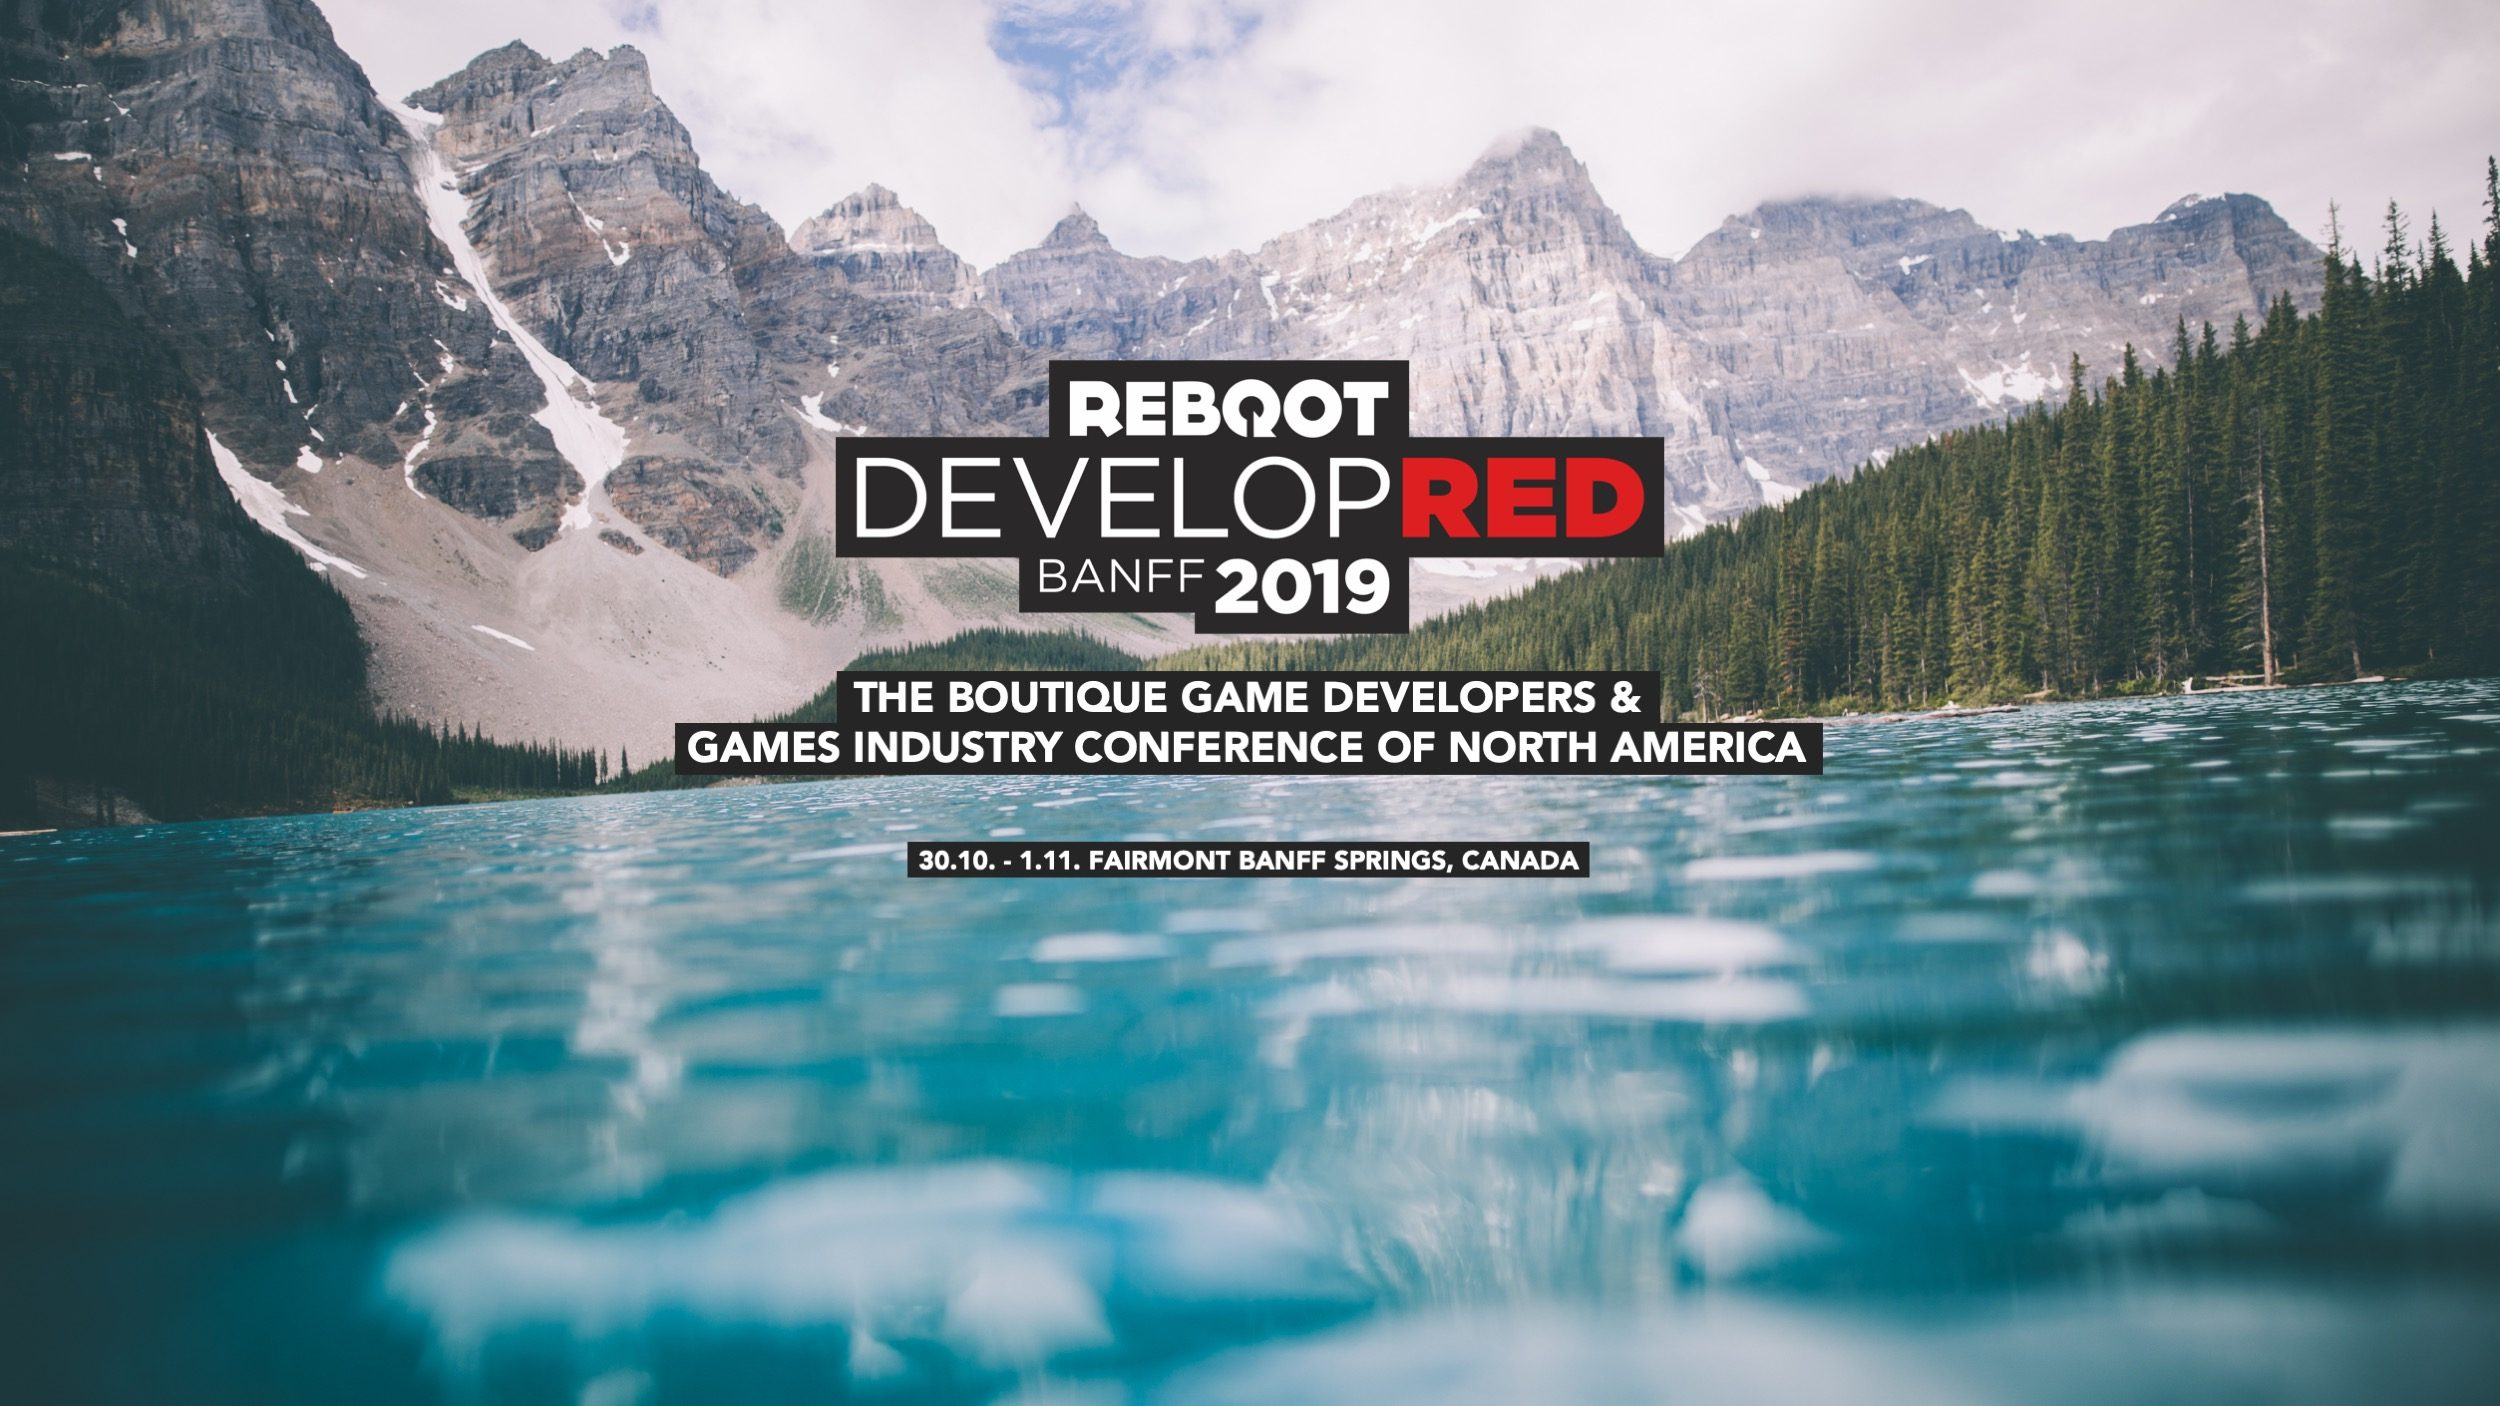 Chris Remo, Denis Dyack and Austin Wintory added to Reboot Develop Red